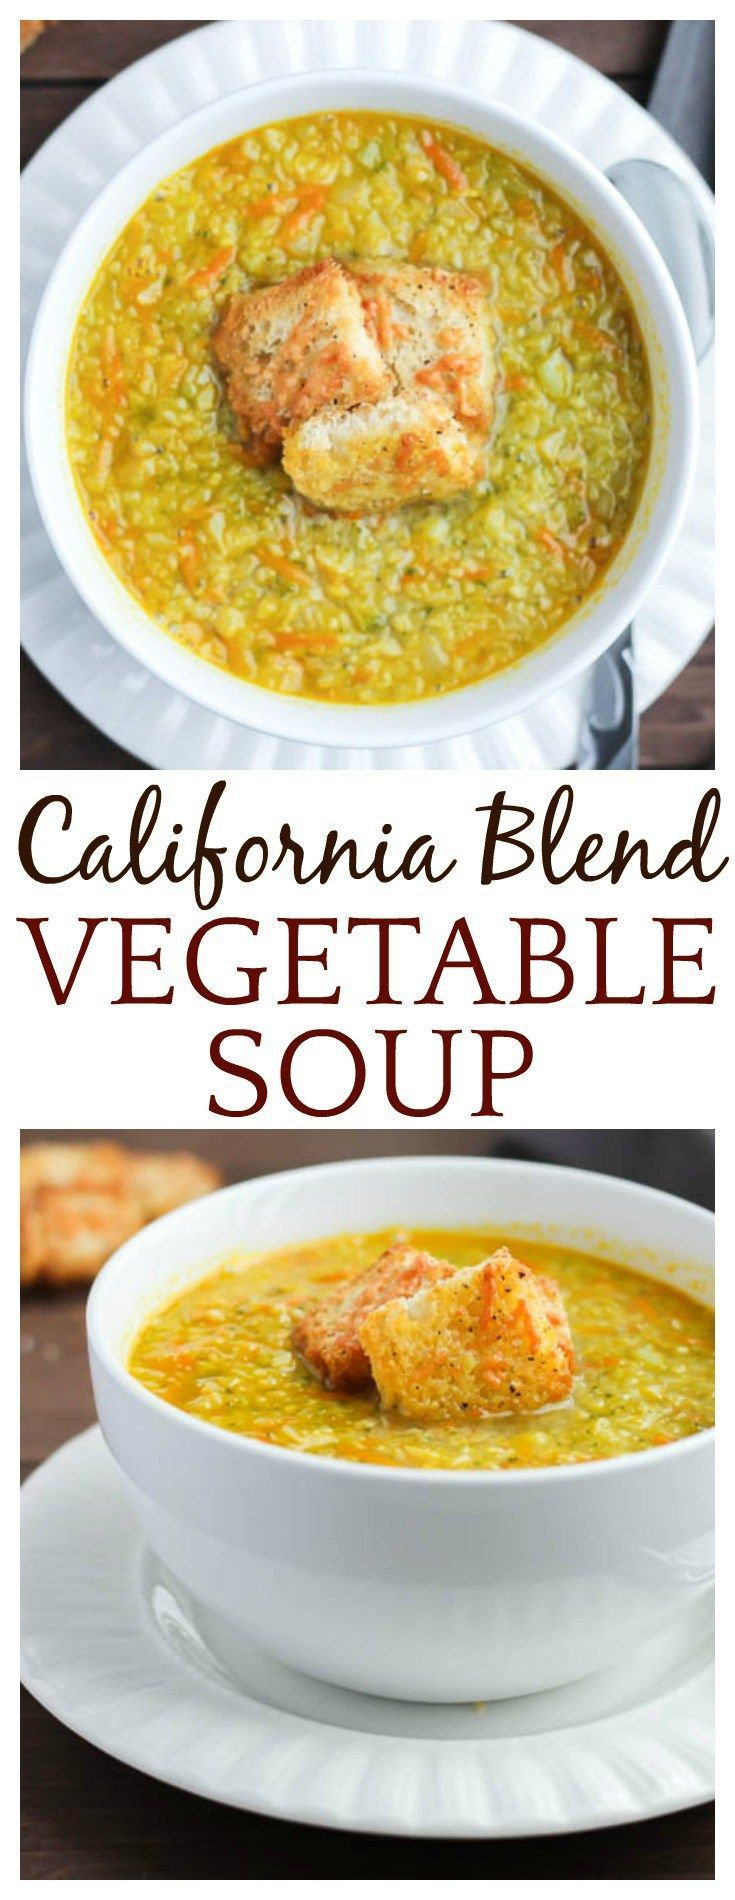 Cauliflower, broccoli, and carrots come together deliciously in this California Blend Vegetable Soup topped with Parmesan Croutons! | vegetarian soup recipe gluten free low carb #soup #DLB - Very versatile recipe. Add meat and preferred spices if desired.